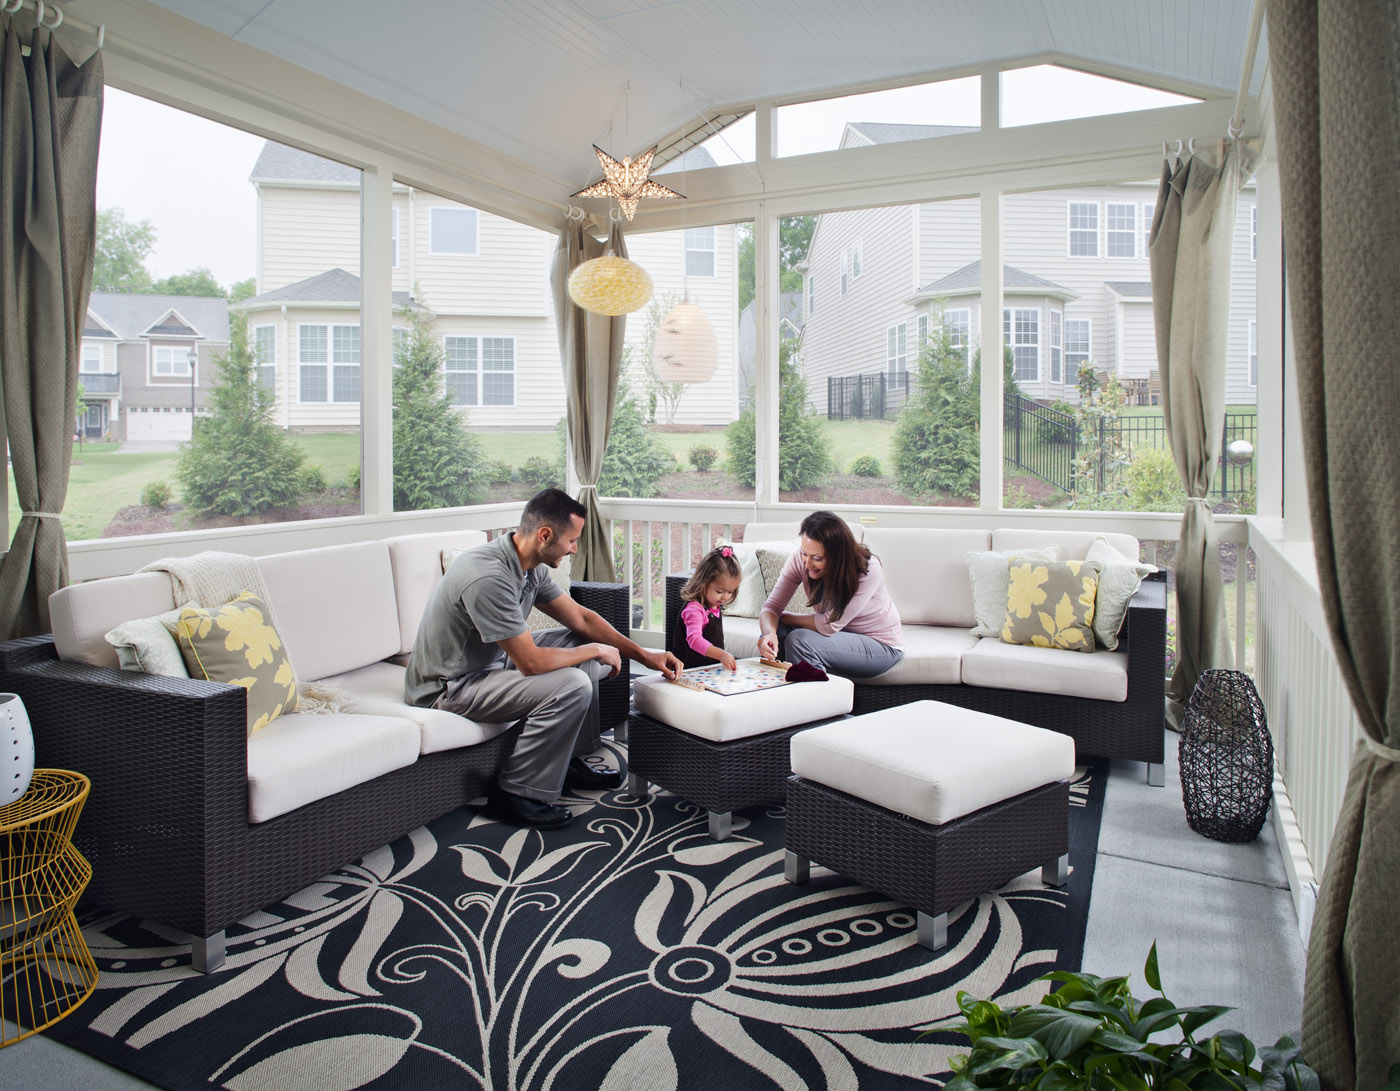 Family enjoying screened in porch